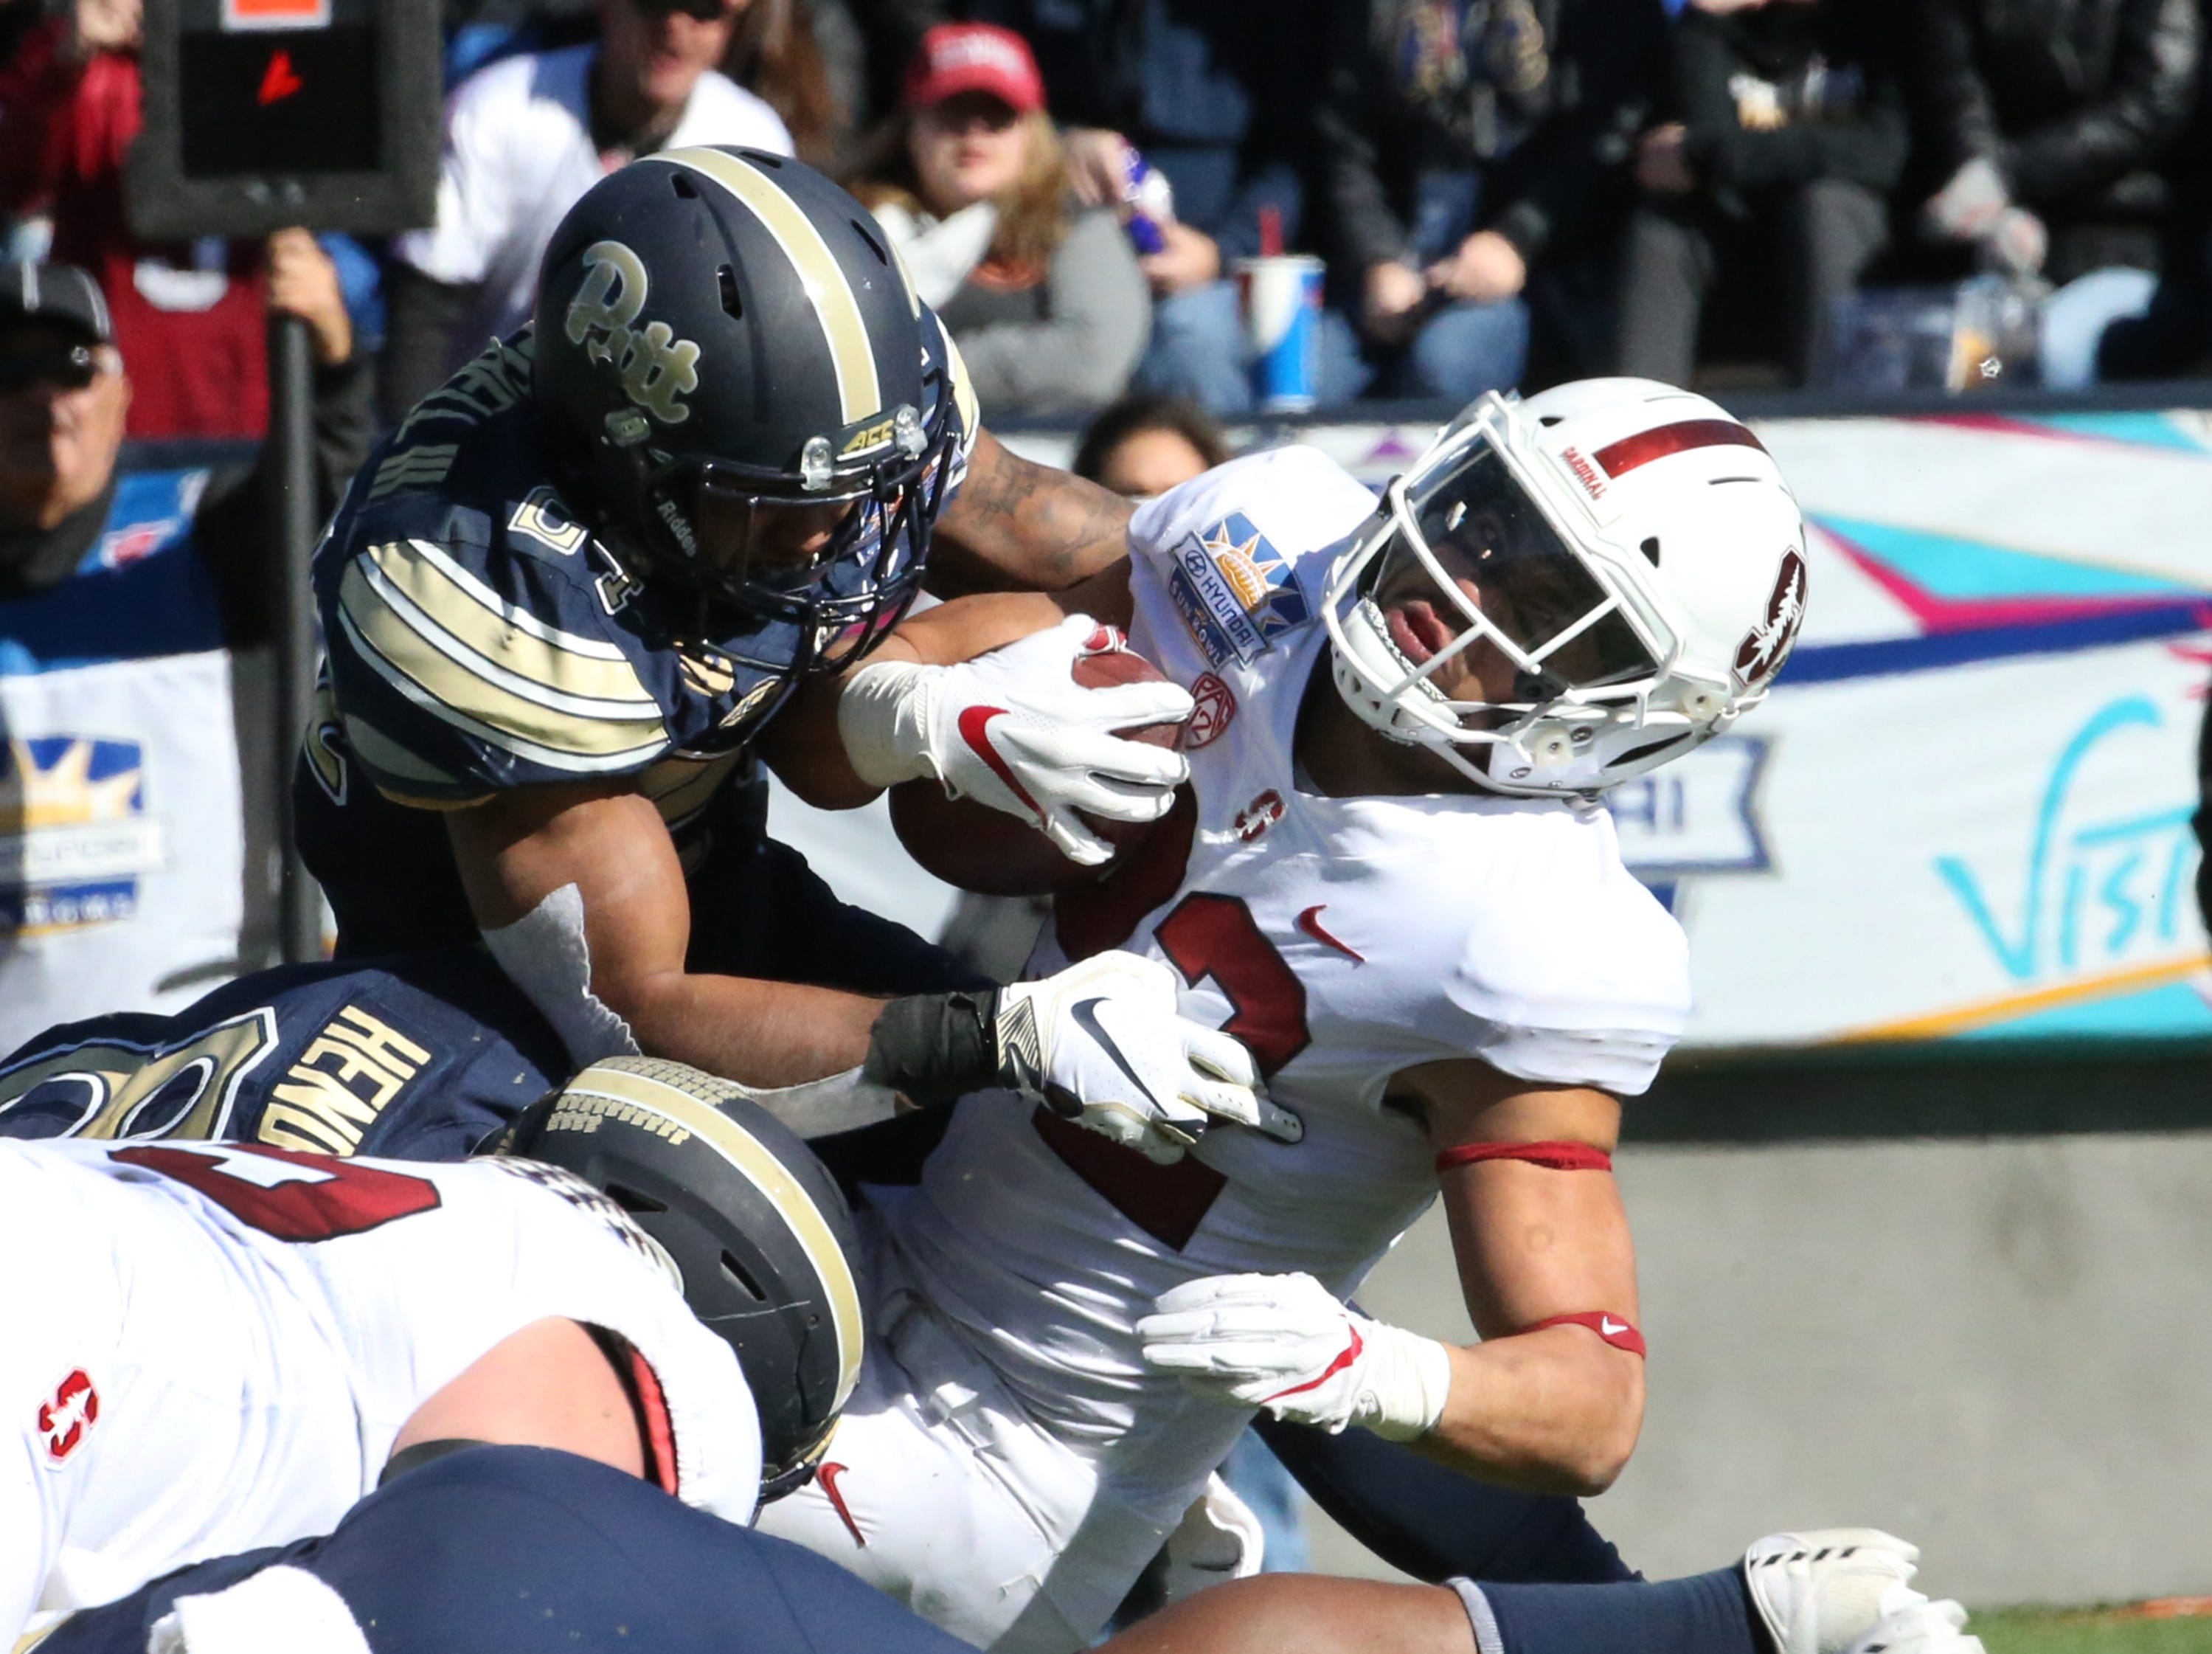 Stanford running back Cameron Scarlett, 22, makes it to the on yard line setting of an Cardinal touchdown against Pitt in the 85th Hyundai Sun Bowl game Monday, Dec. 31.